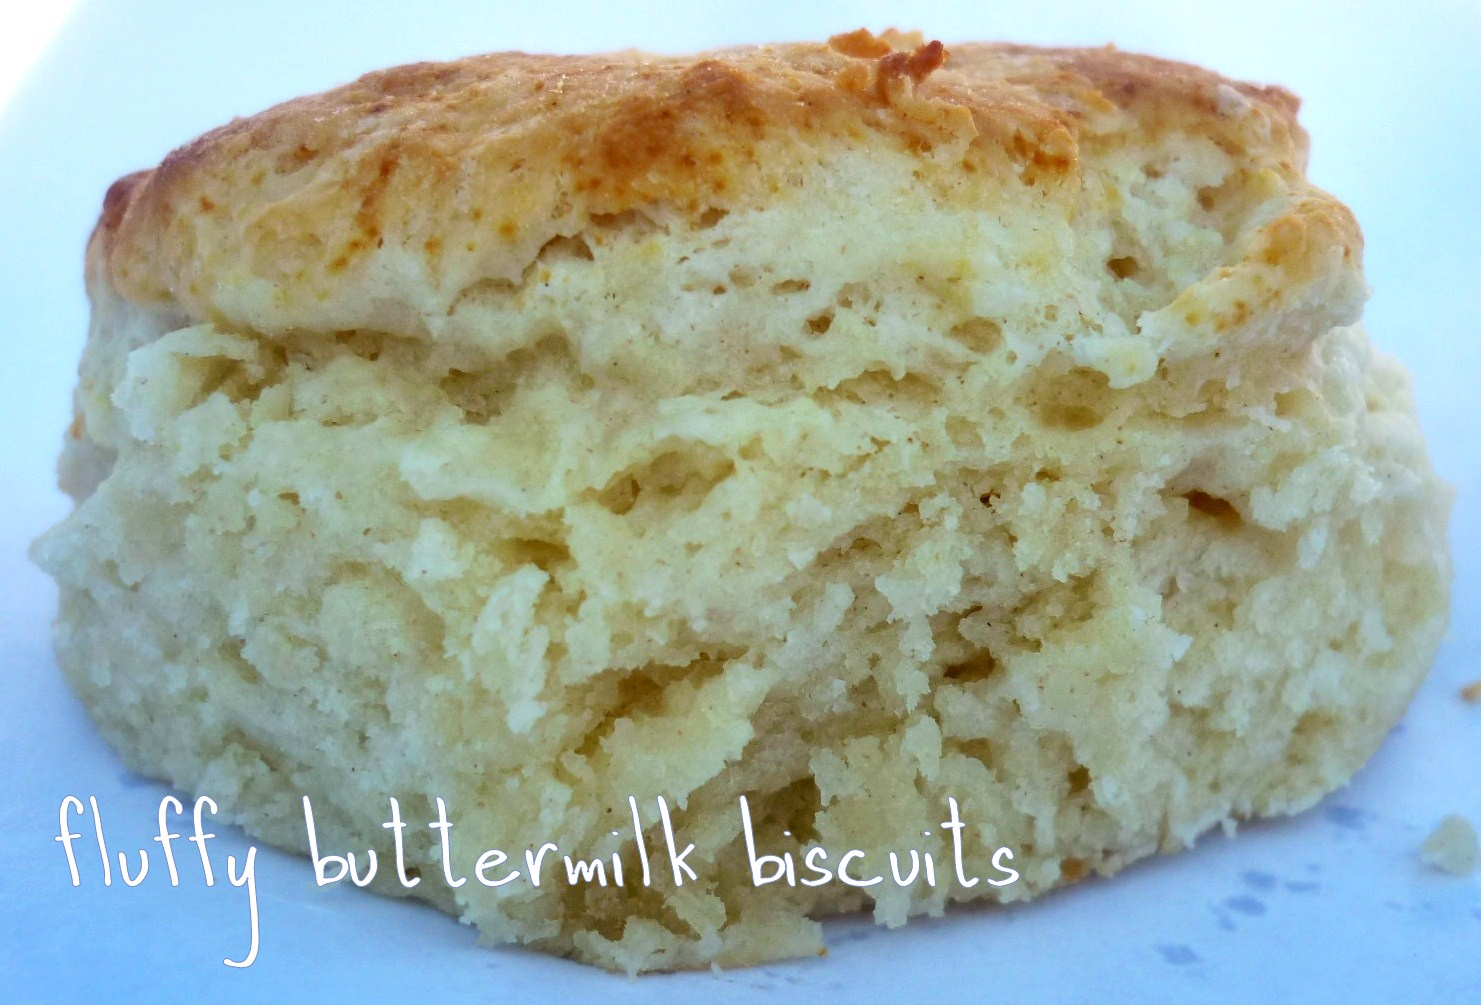 So Good Buttermilk Biscuits - Sprinkled with Flour